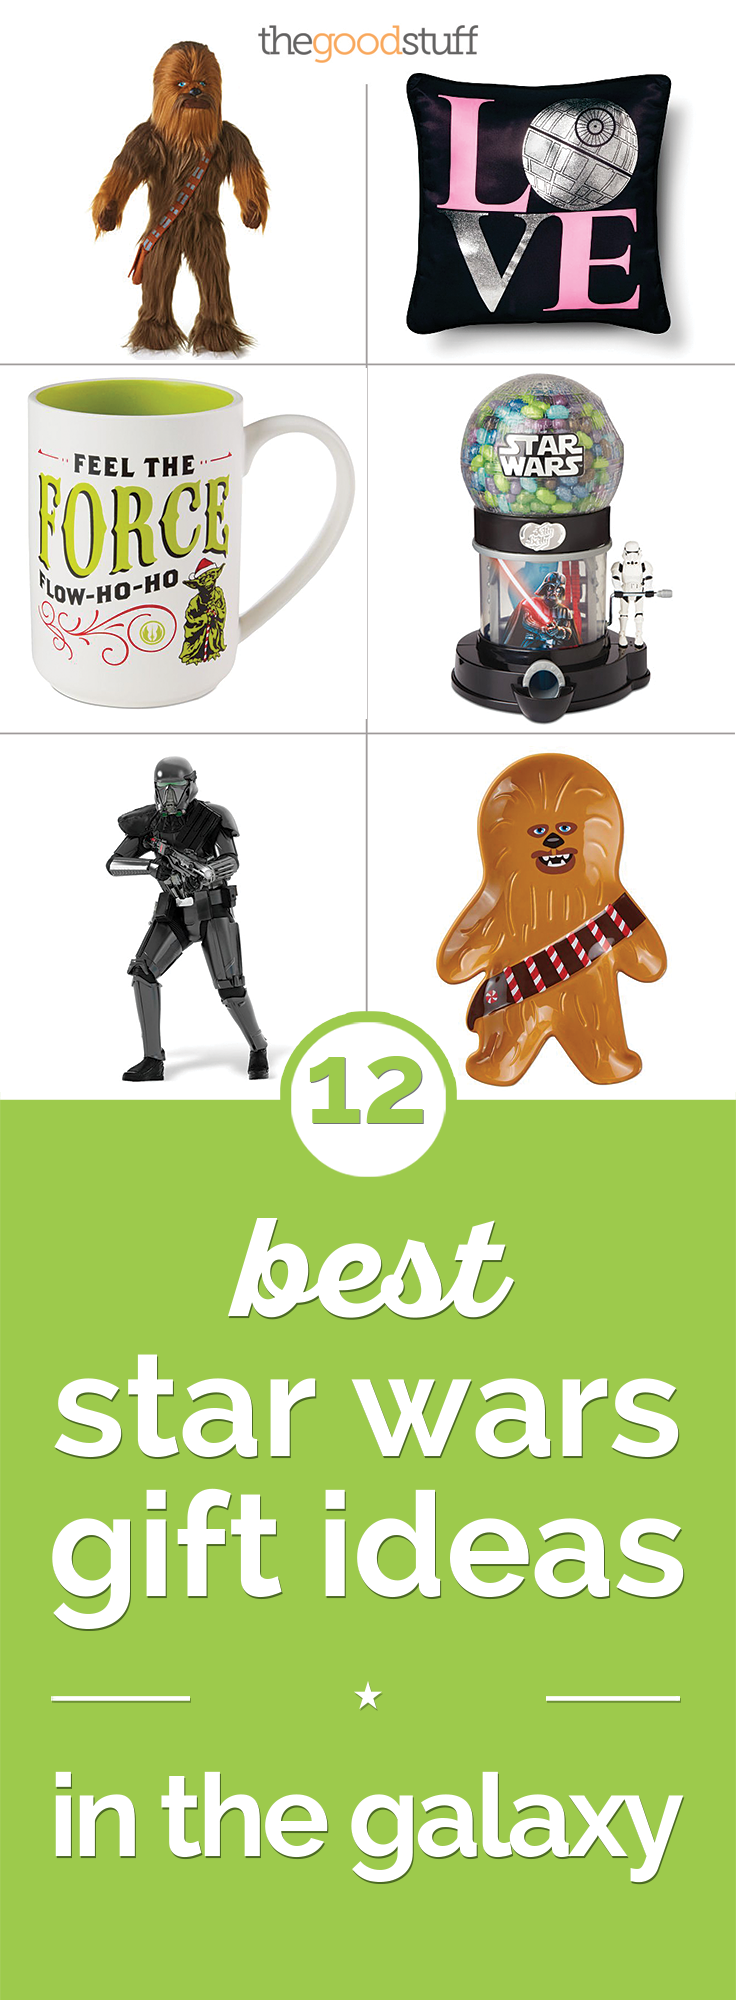 The 12 Best Star Wars Gift Ideas in the Galaxy | thegoodstuff